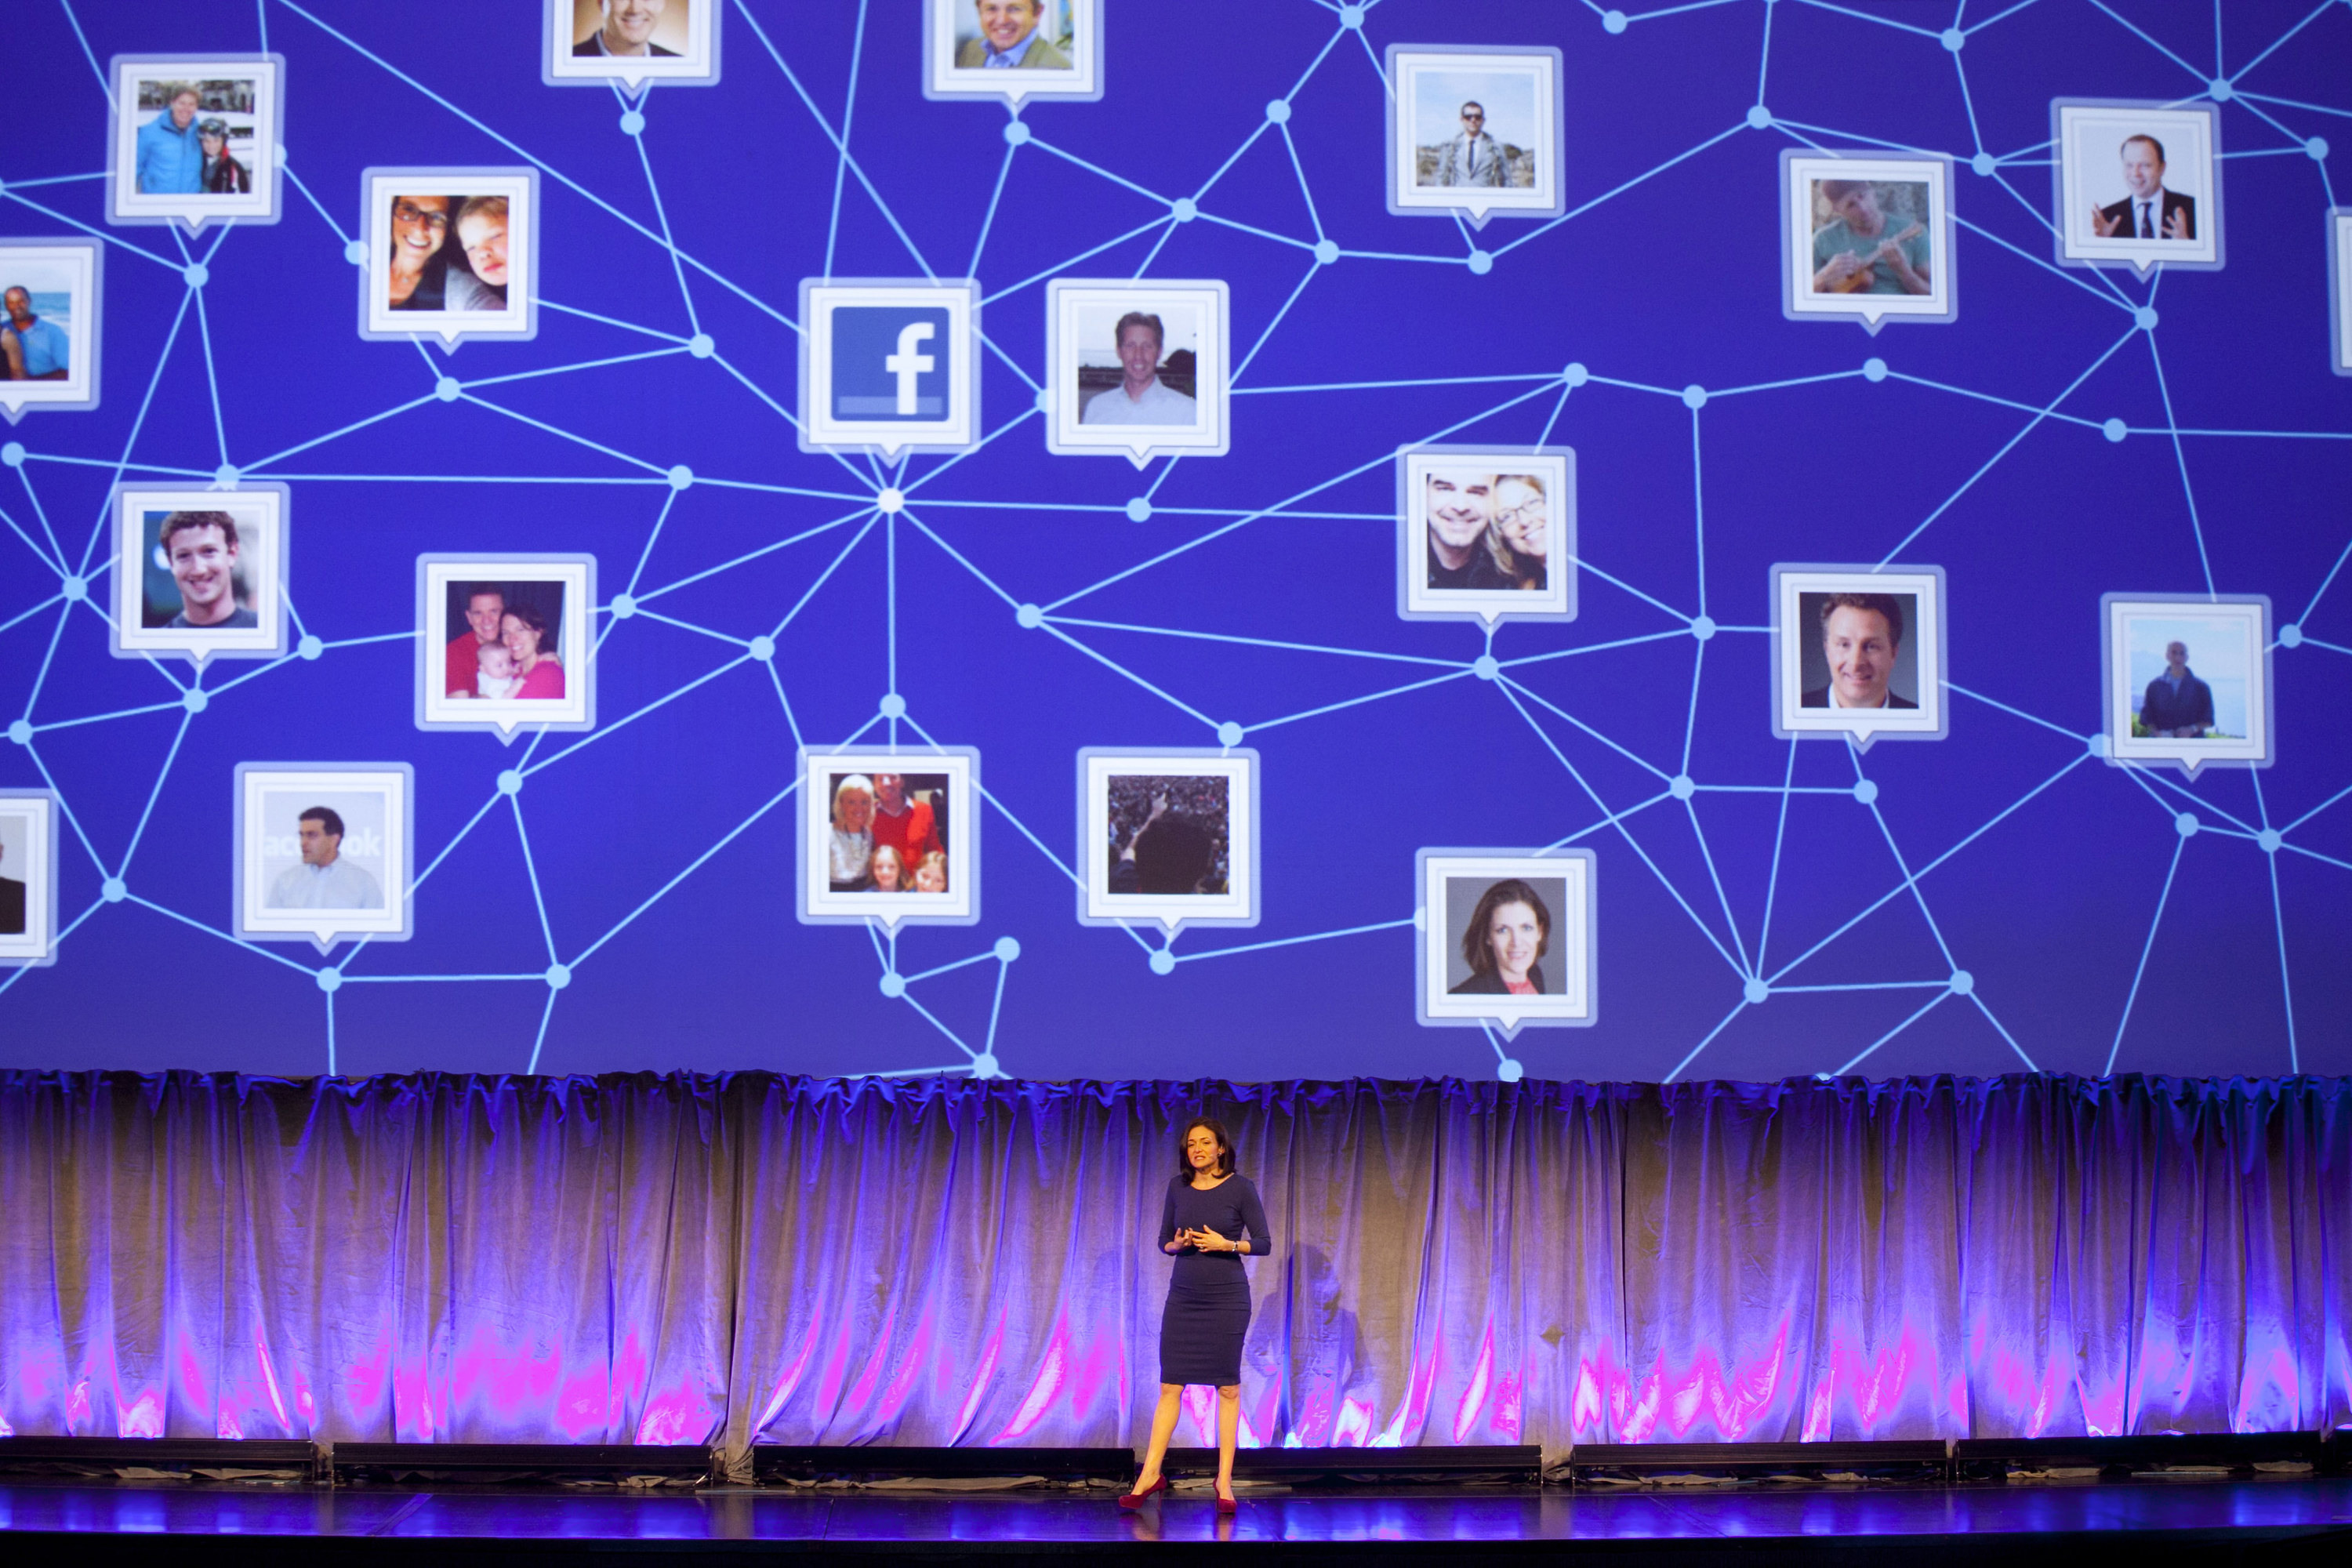 A woman speaks onstage in front of a large diagram above her that shows images of people connected to one another by lines, resembling a vast social network